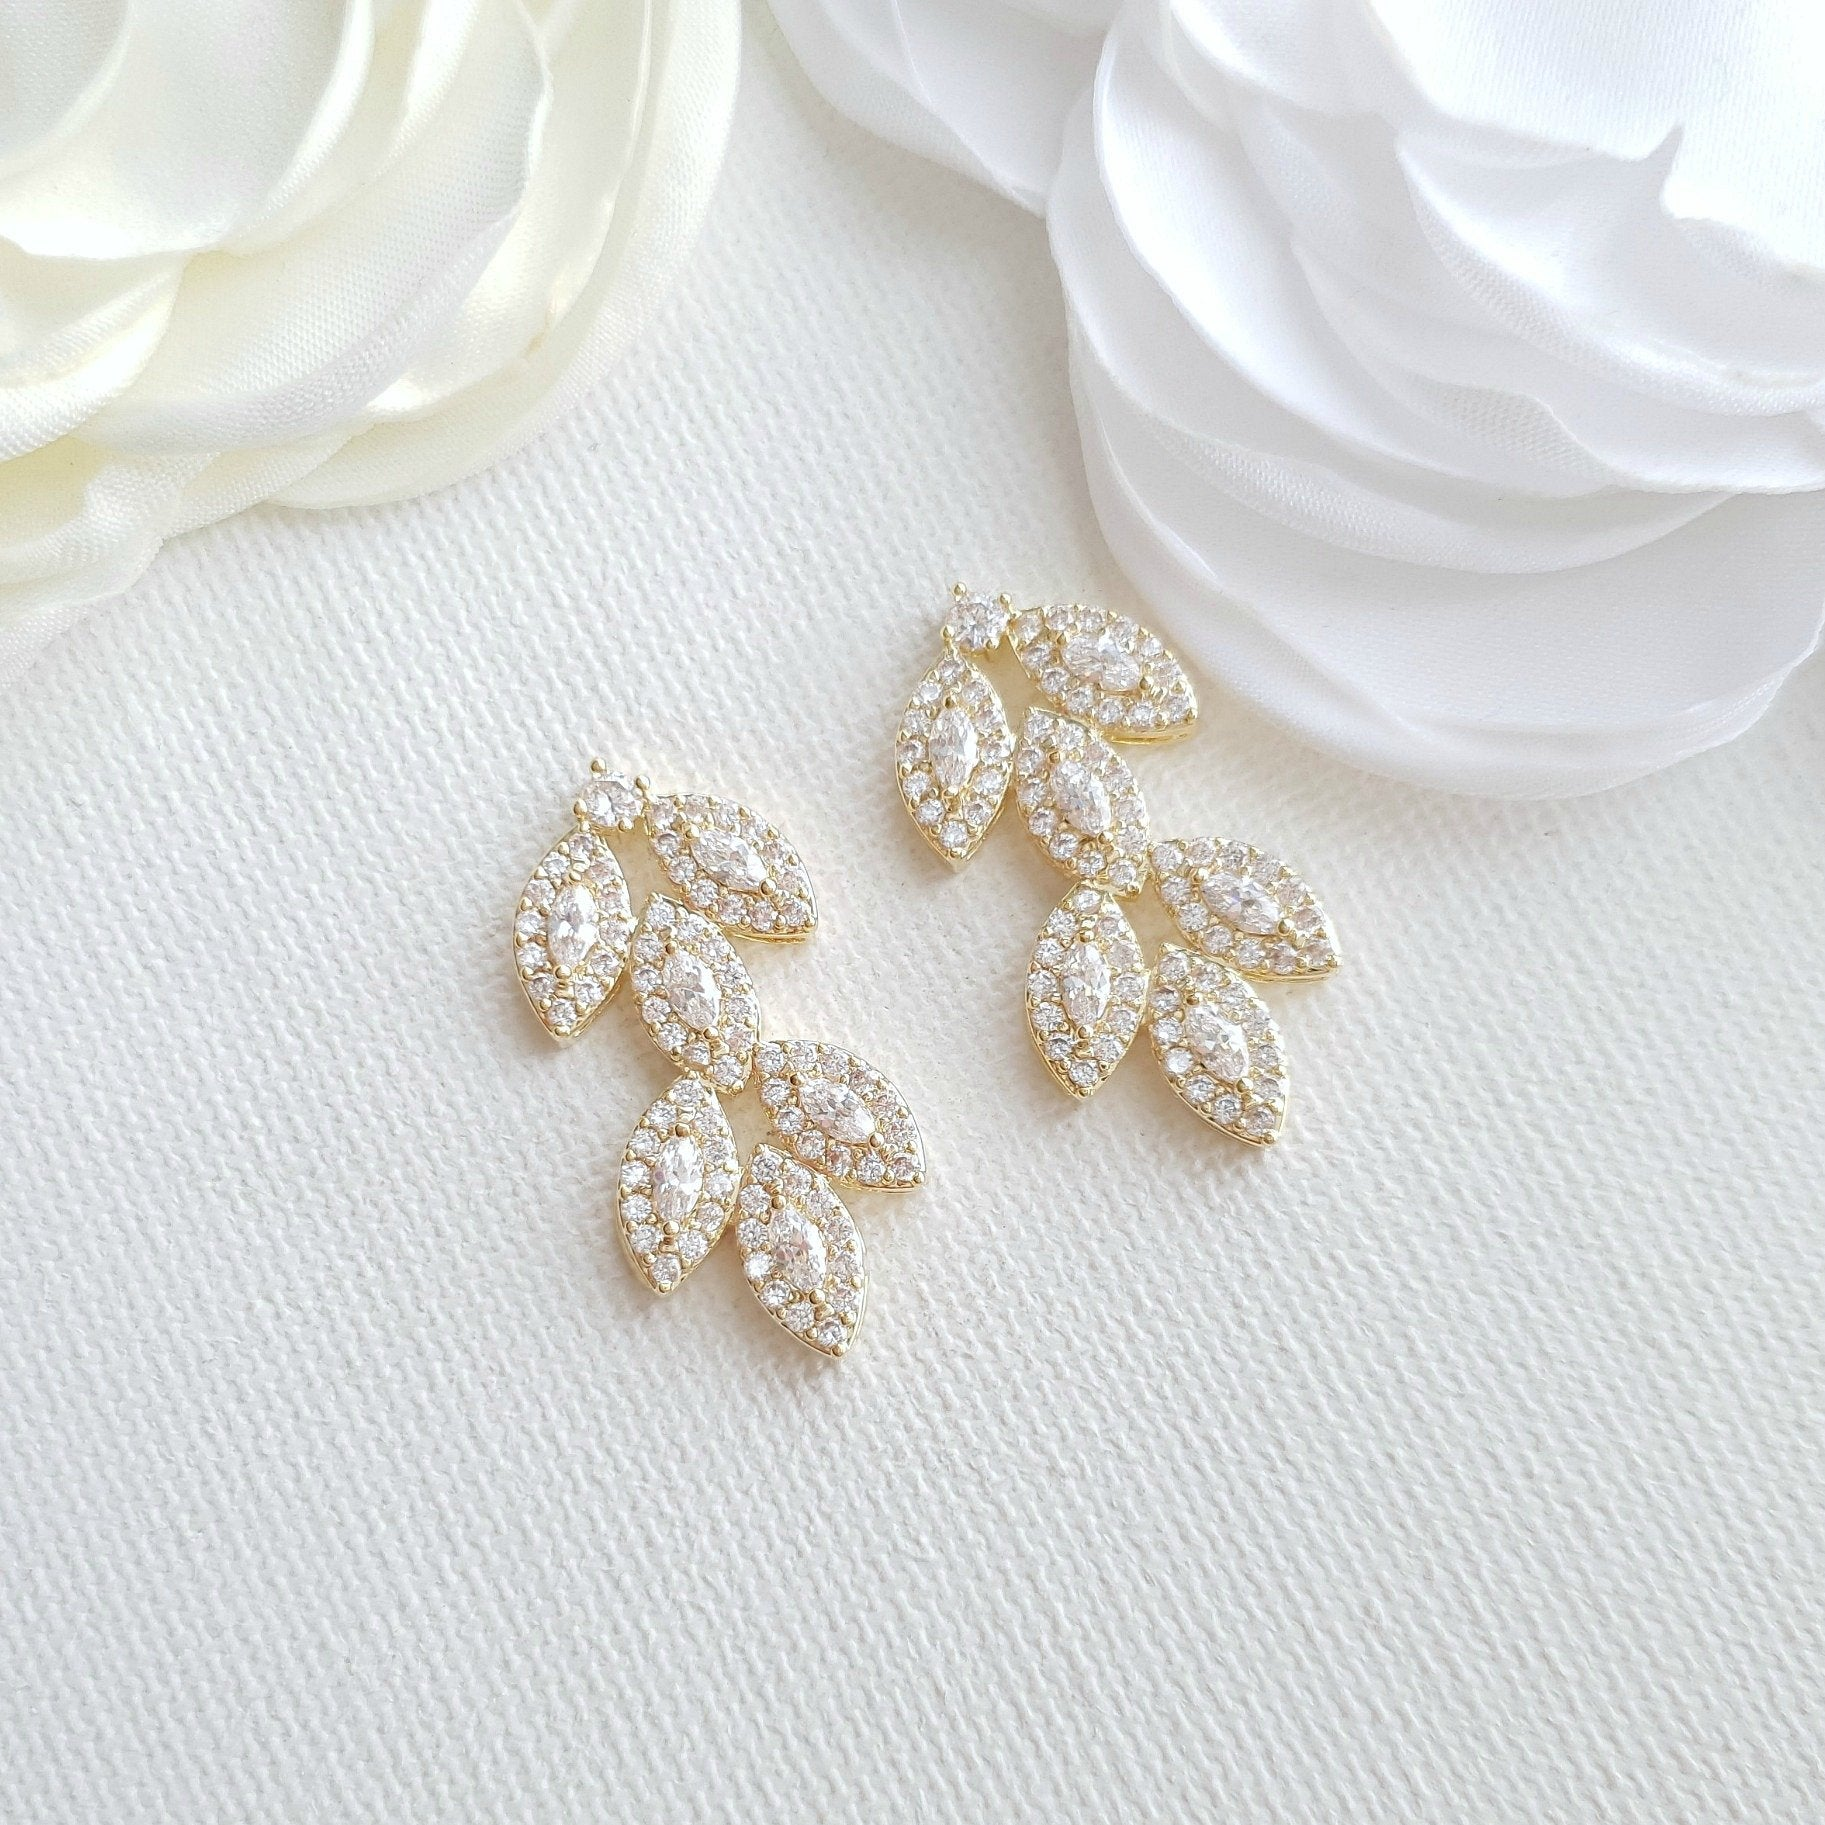 Cubic Zirconia Gold Leaf Stud Earrings- Abby - PoetryDesigns